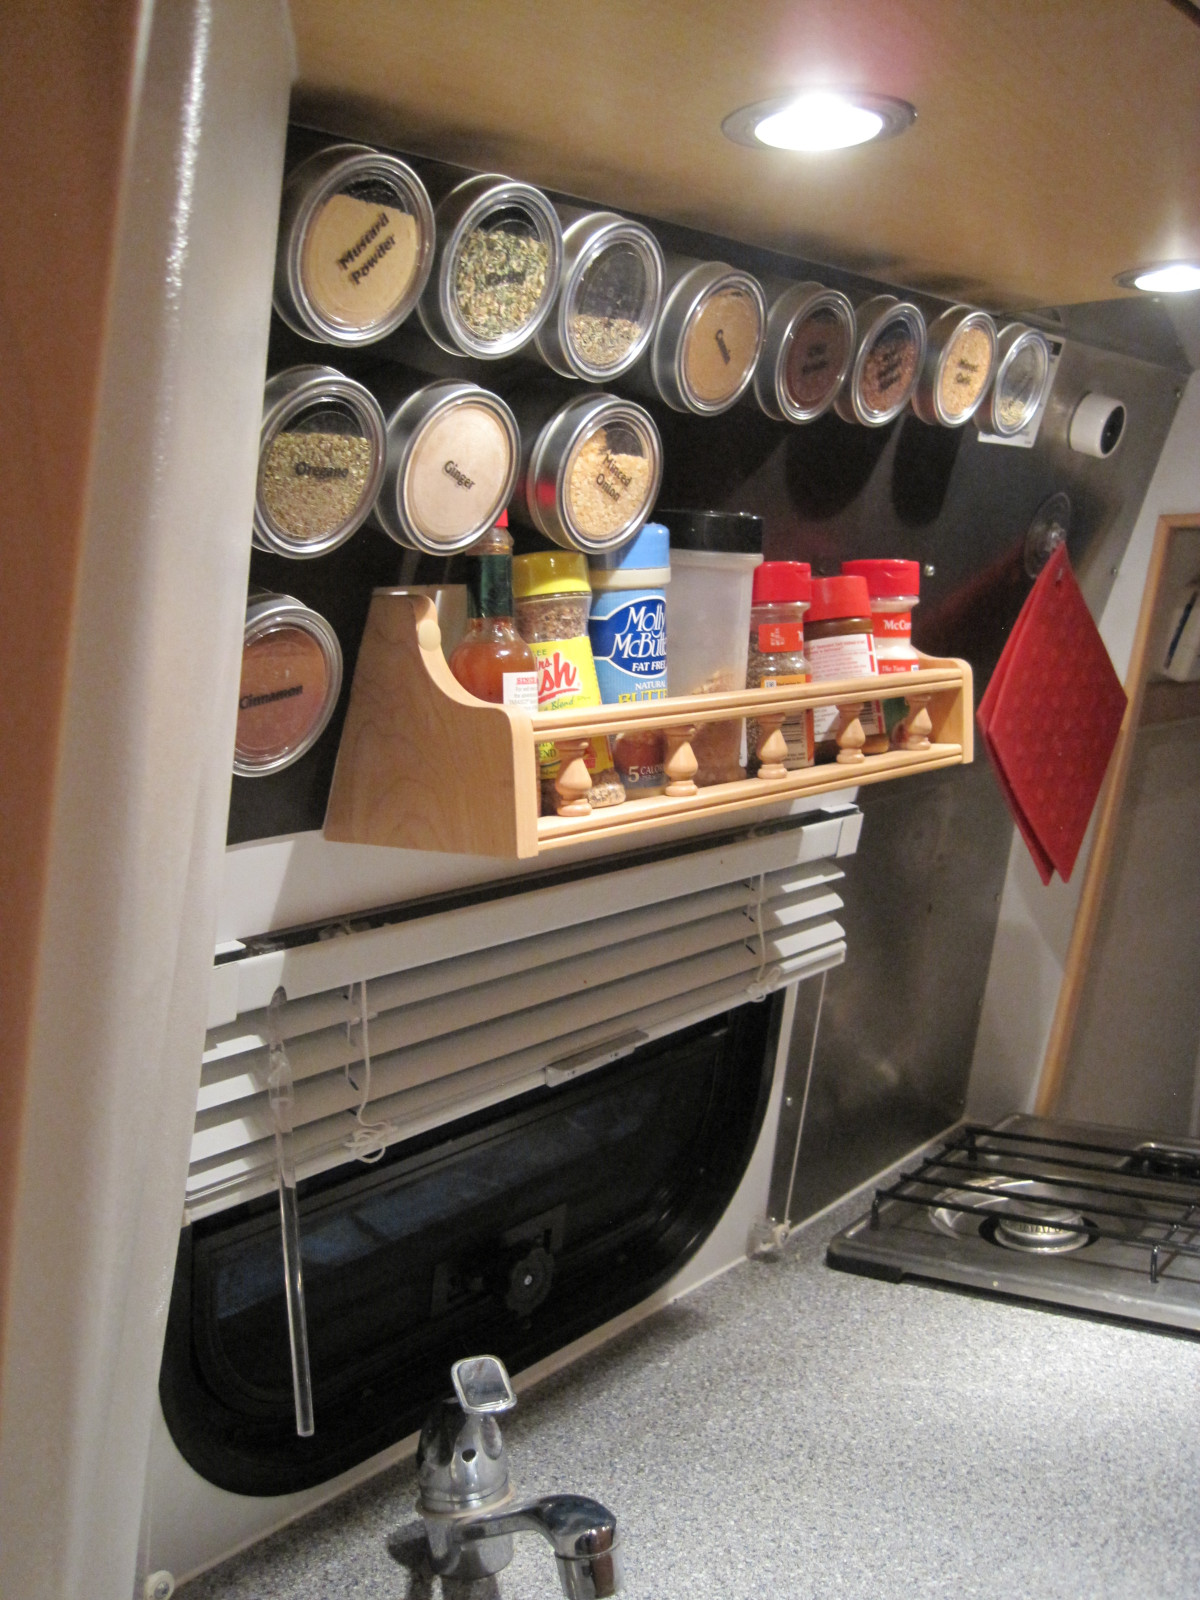 Rose W., Lindsborg, Kansas - Rose installed Flexible Magnetic Material above her RV stove. Using Non-Magnetic Applause Spice Tins, she has created new storage in her motorhome.